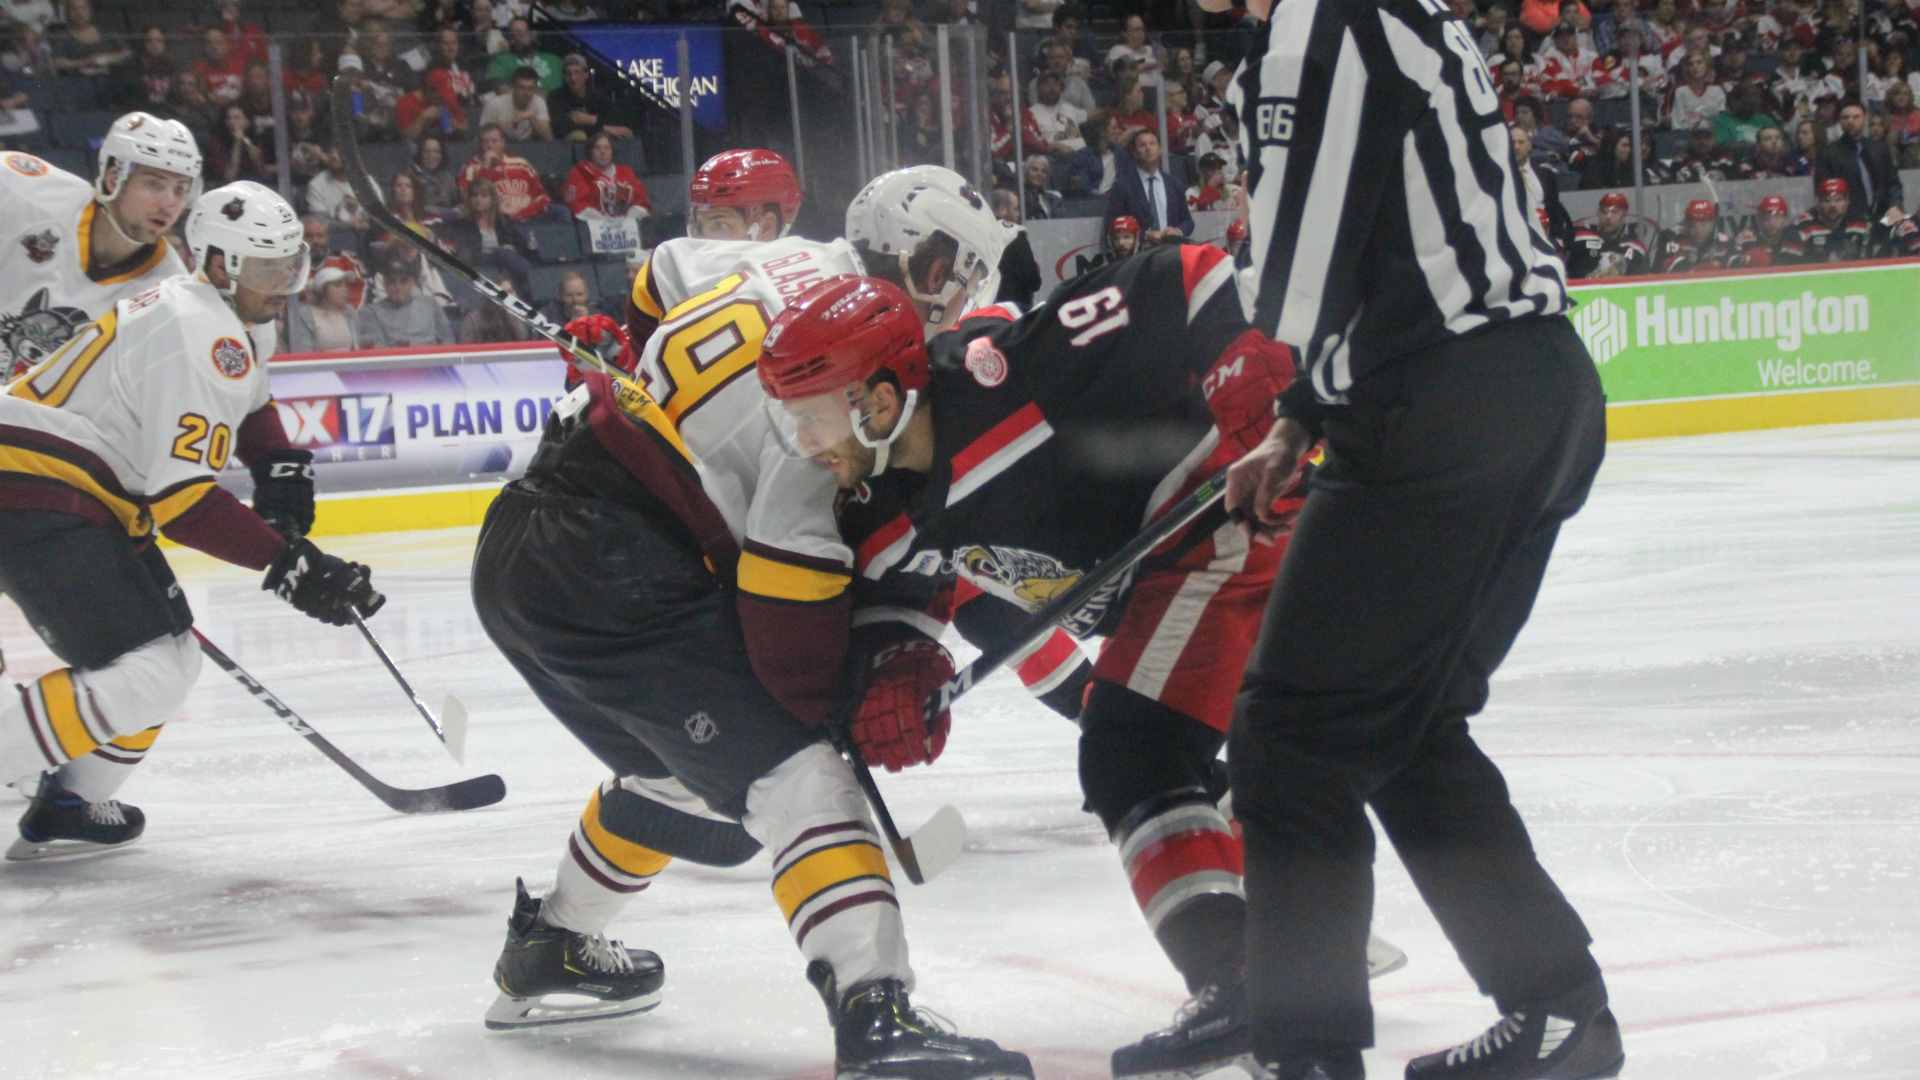 grand rapids griffins chicago wolves game 4 042419_1556160454572.JPG.jpg